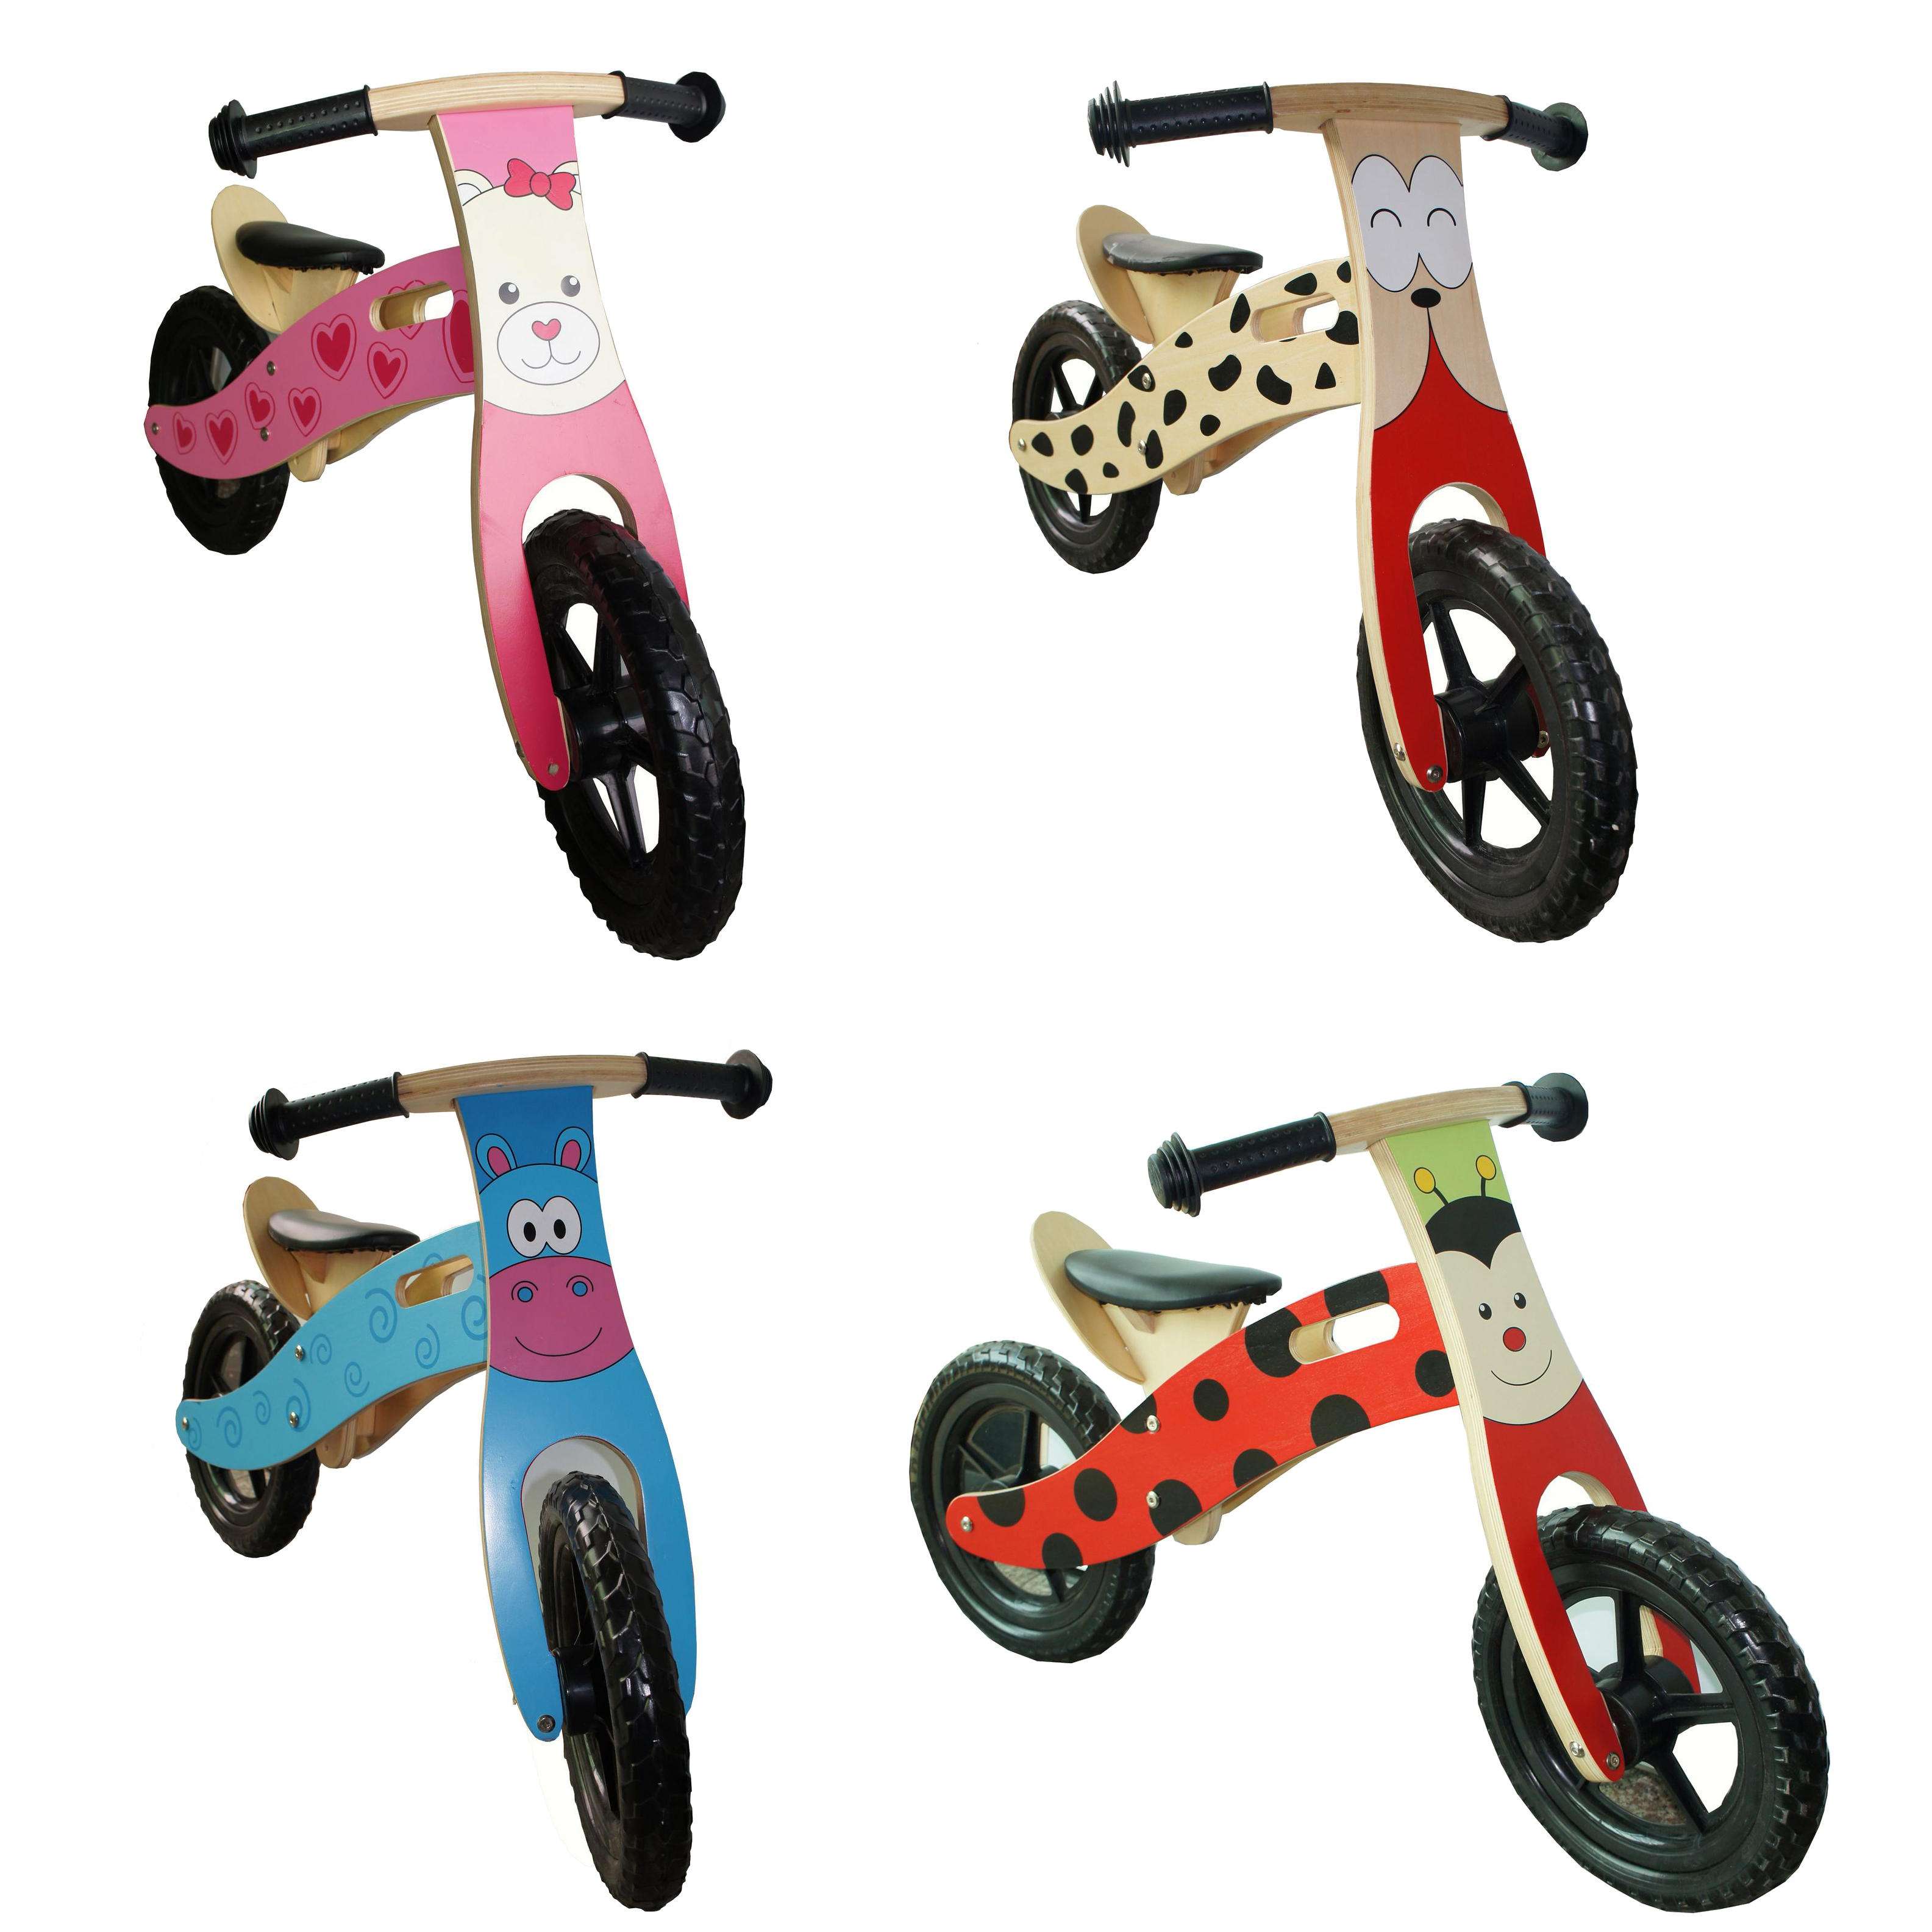 Bikes For Toddlers No Pedals Kids Wooden Balance Bike No